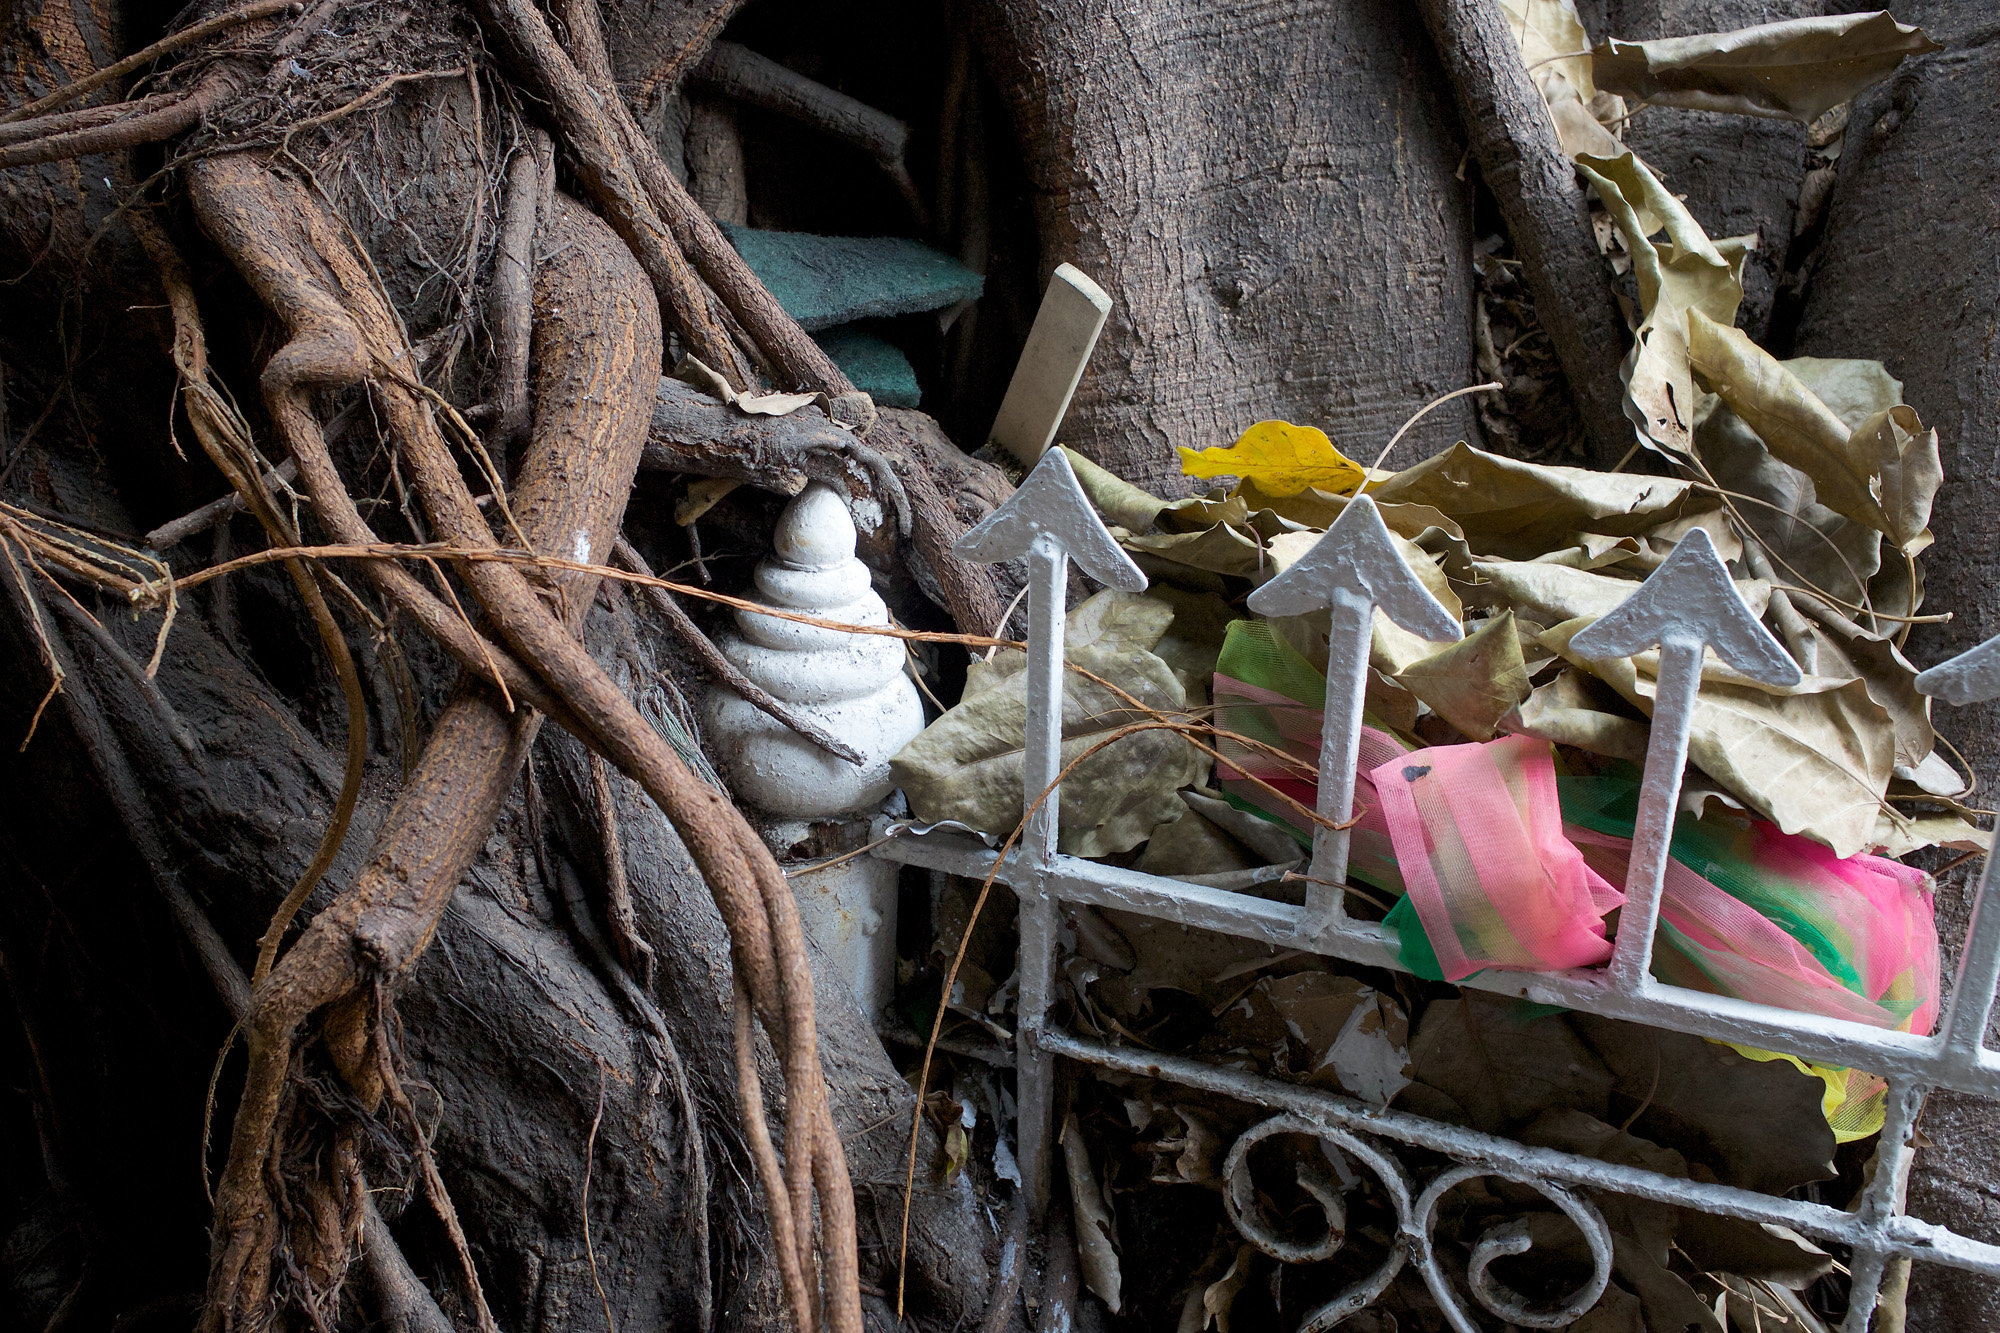 Finding Still Life Compositions on the Street